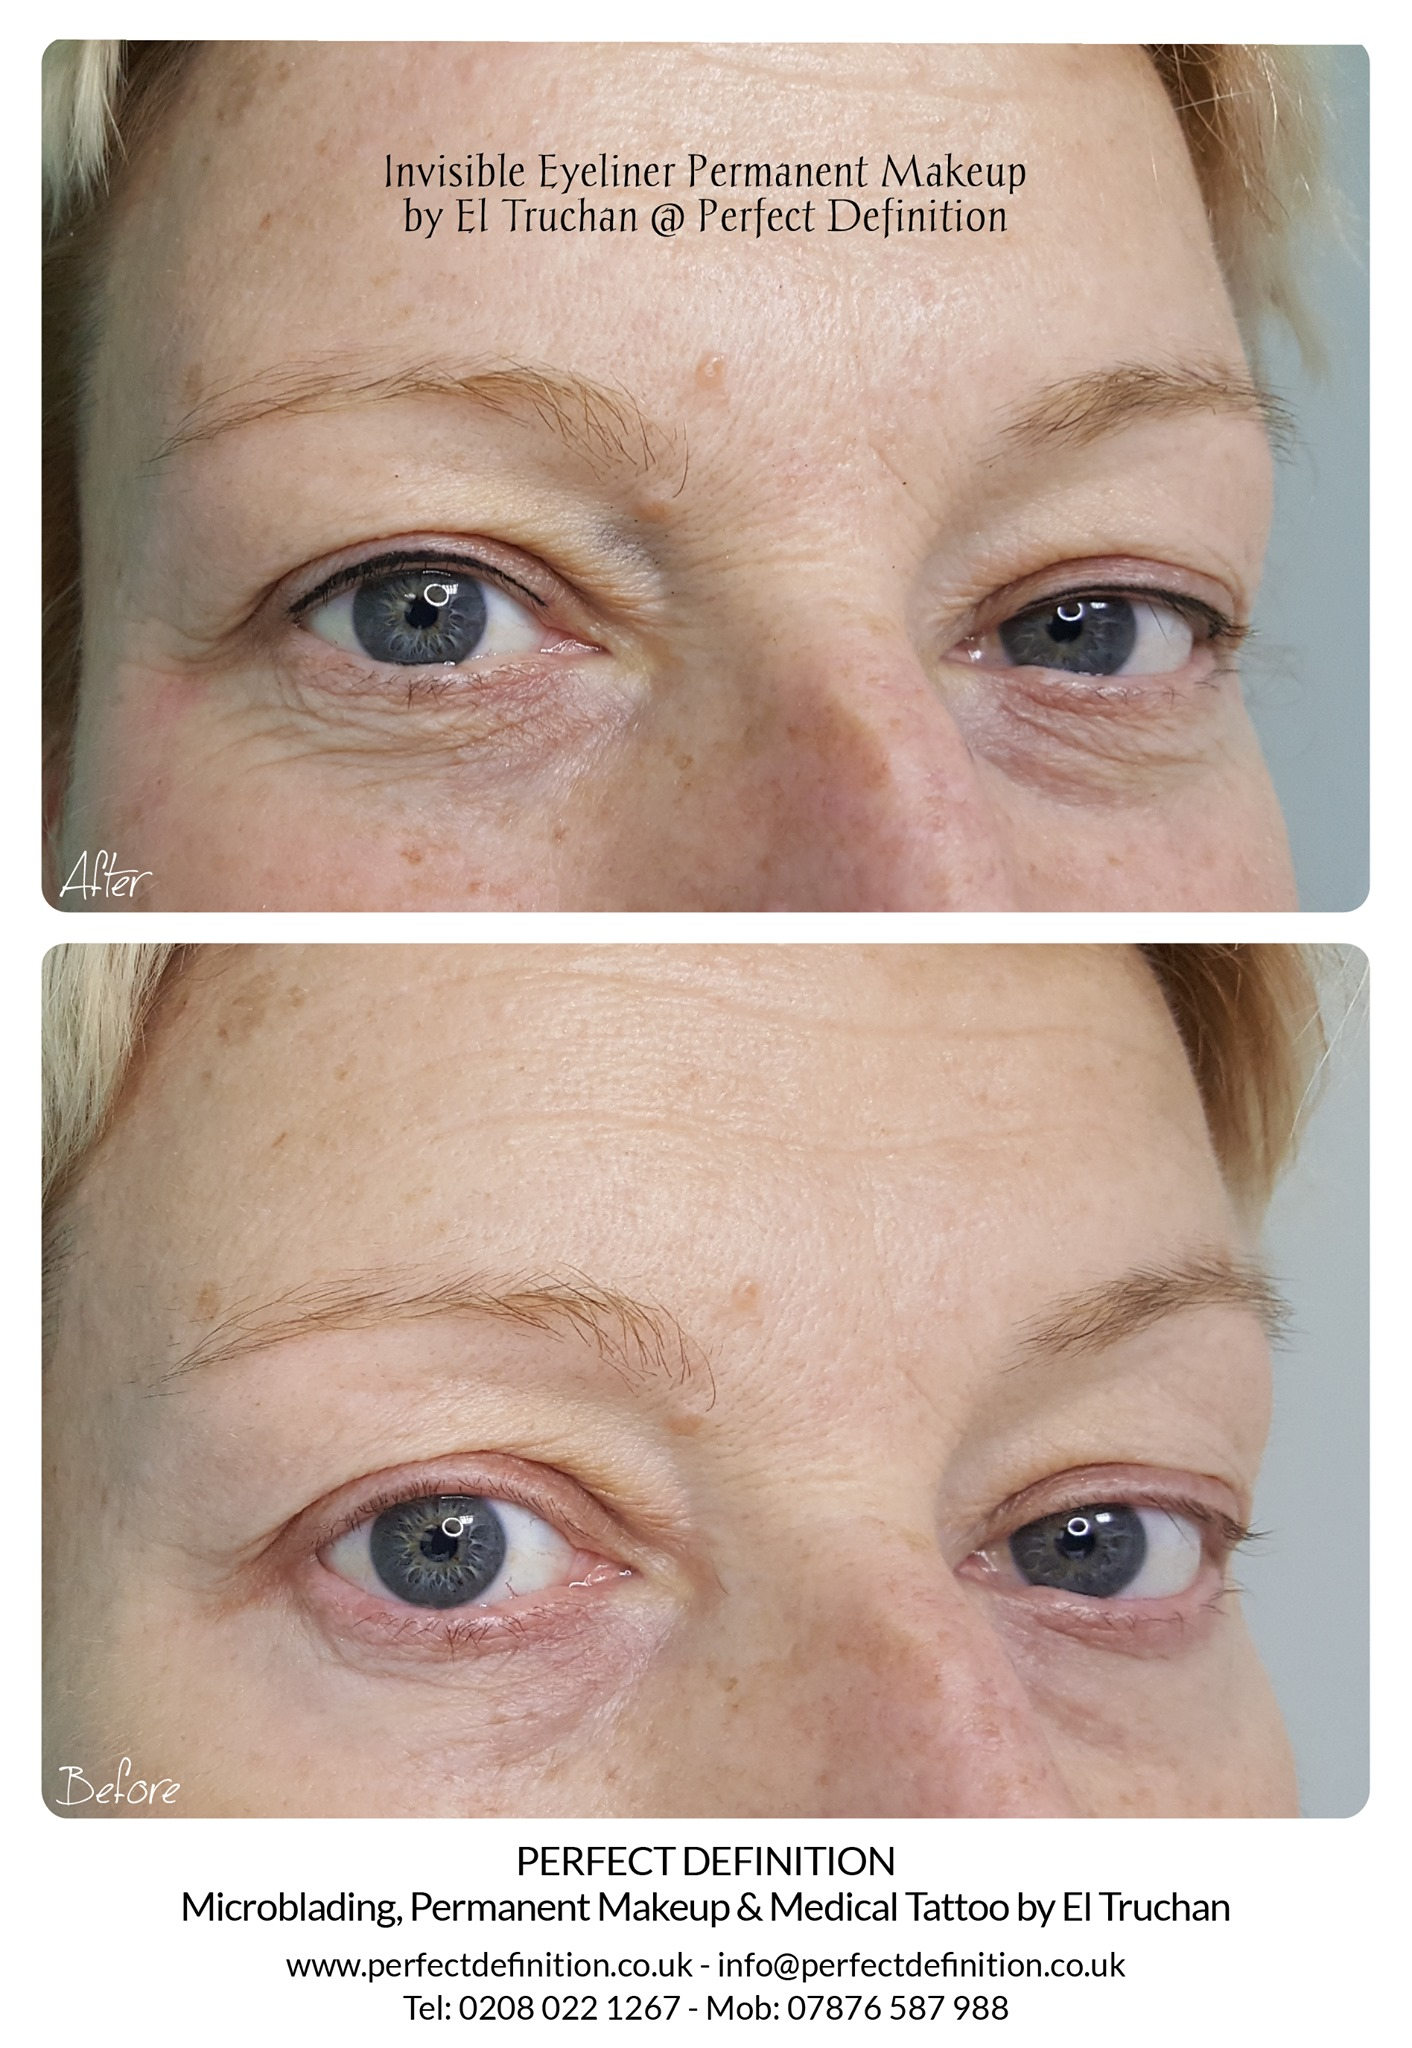 Invisible Eyeliner Permanent Makeup by E